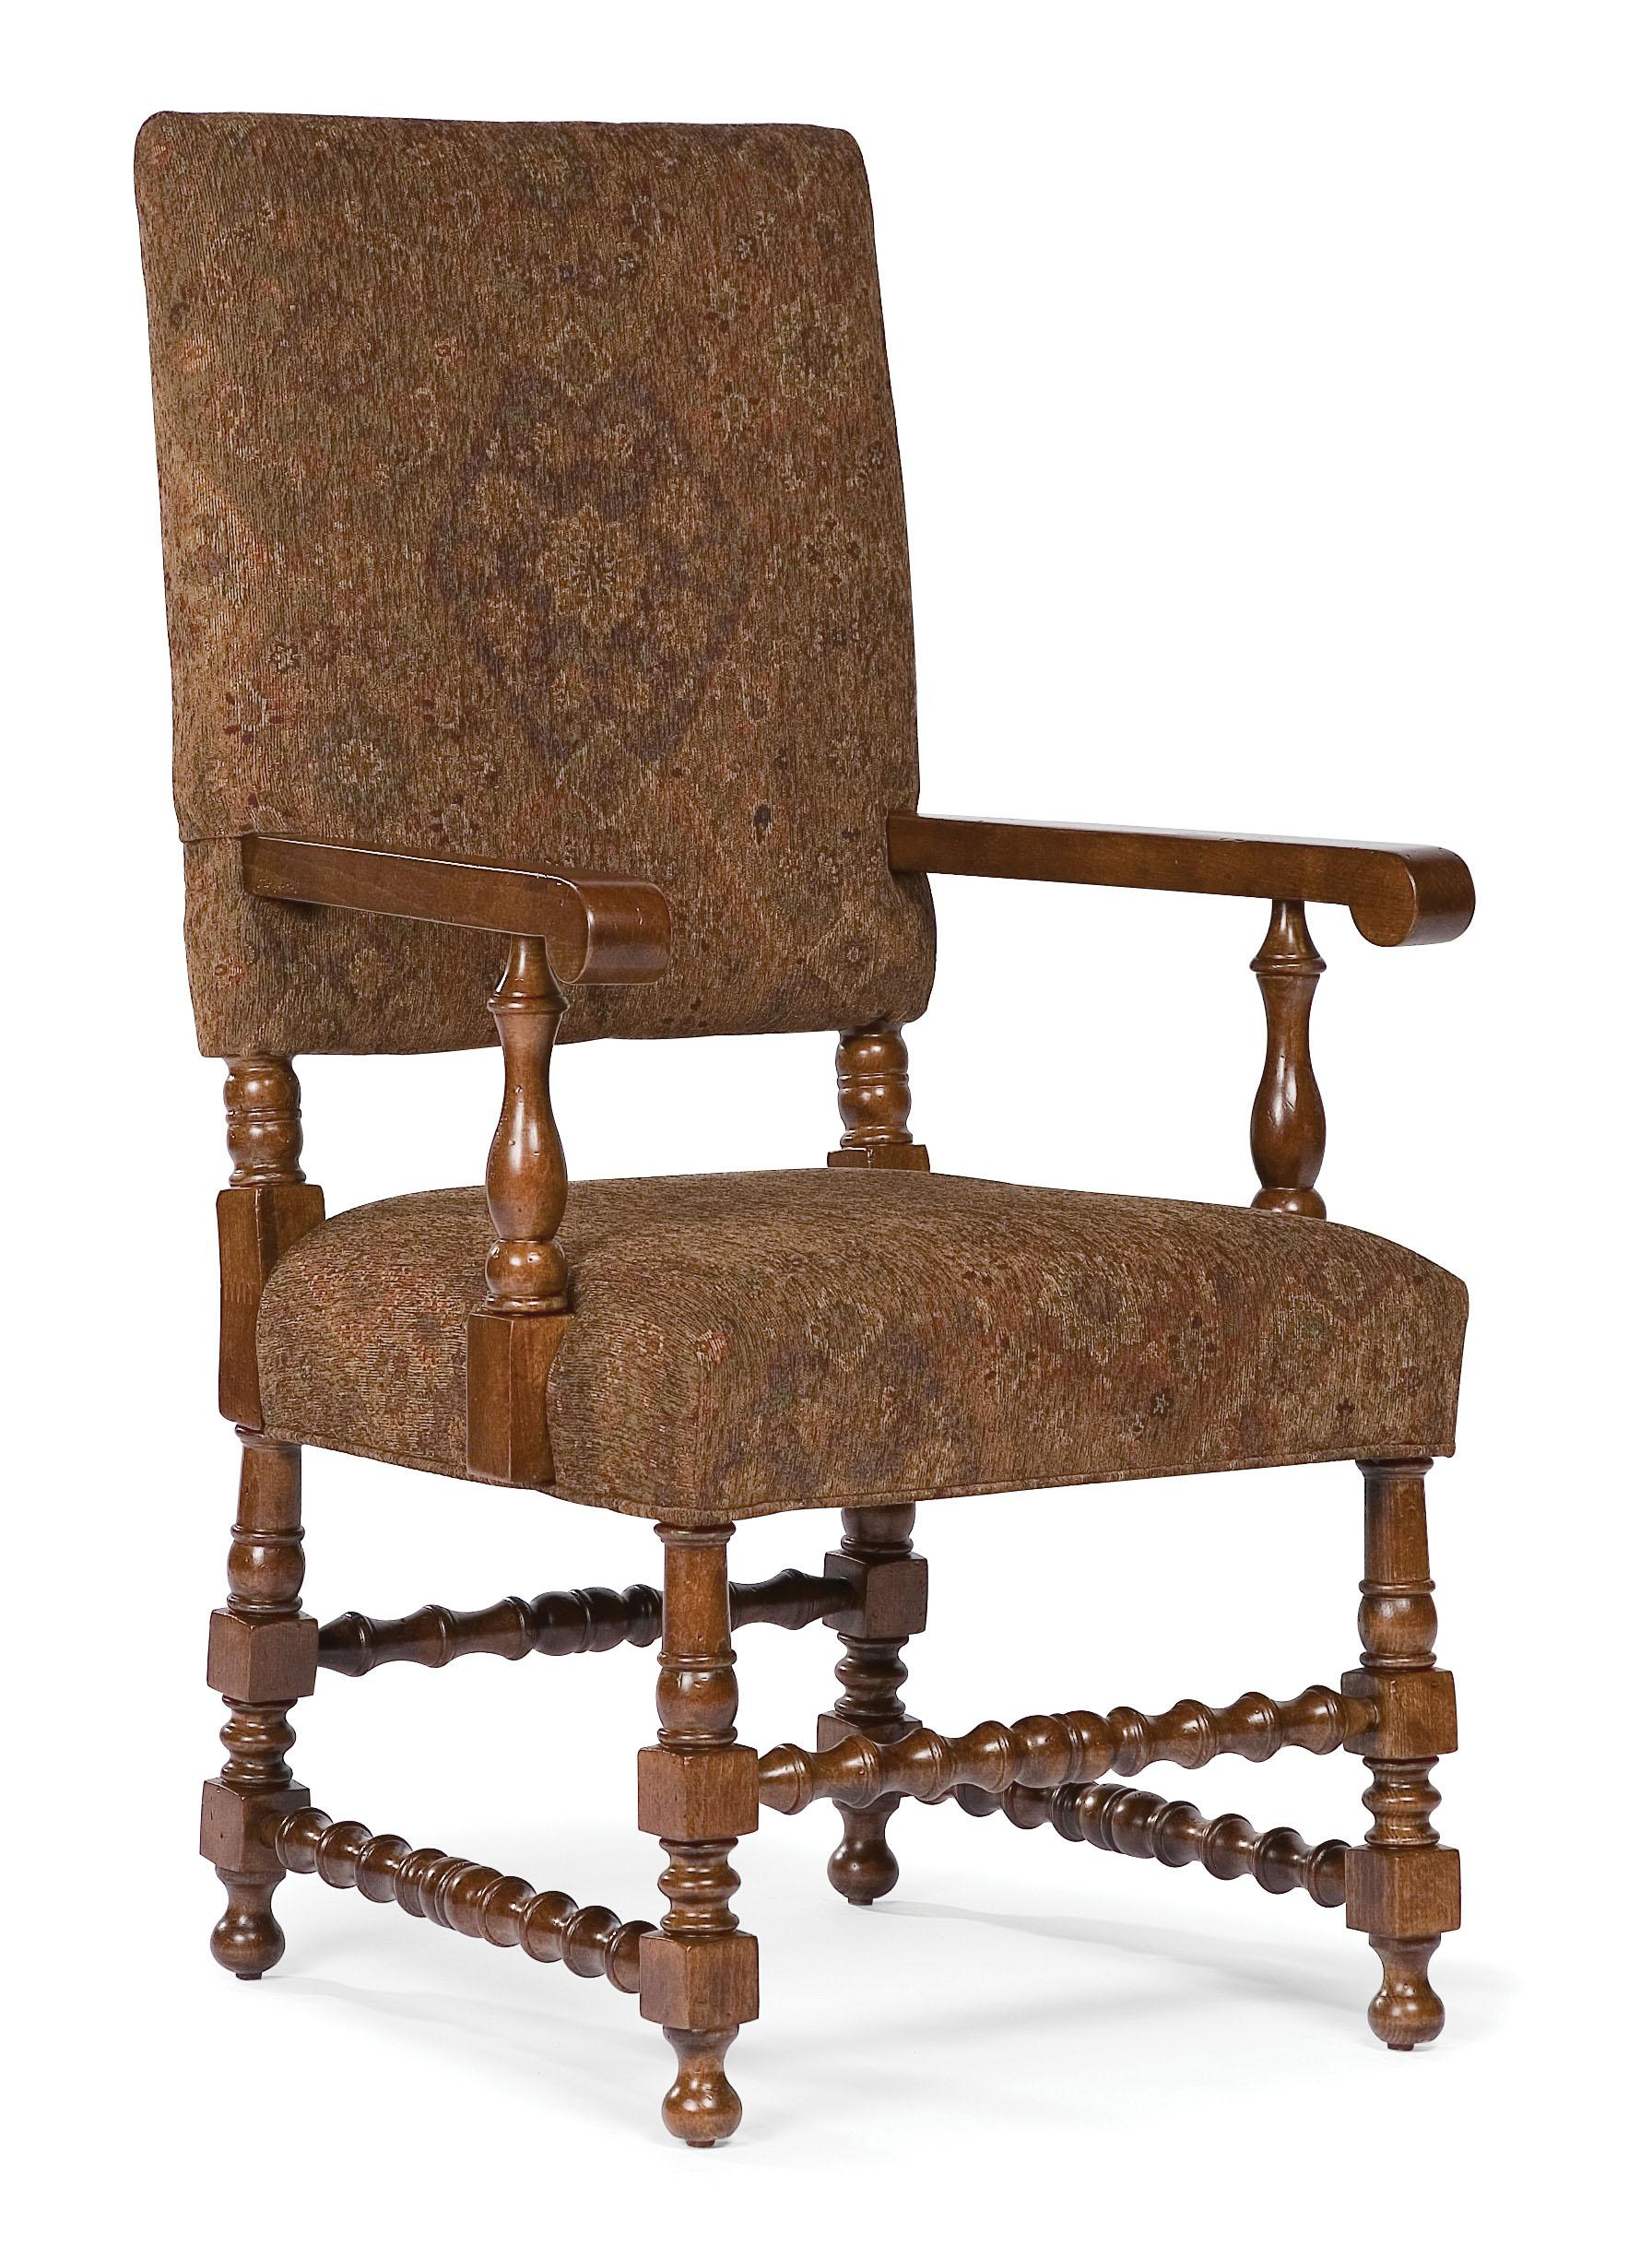 Fairfield Chairs Exposed Wood Arm Chair - Item Number: 5406-04